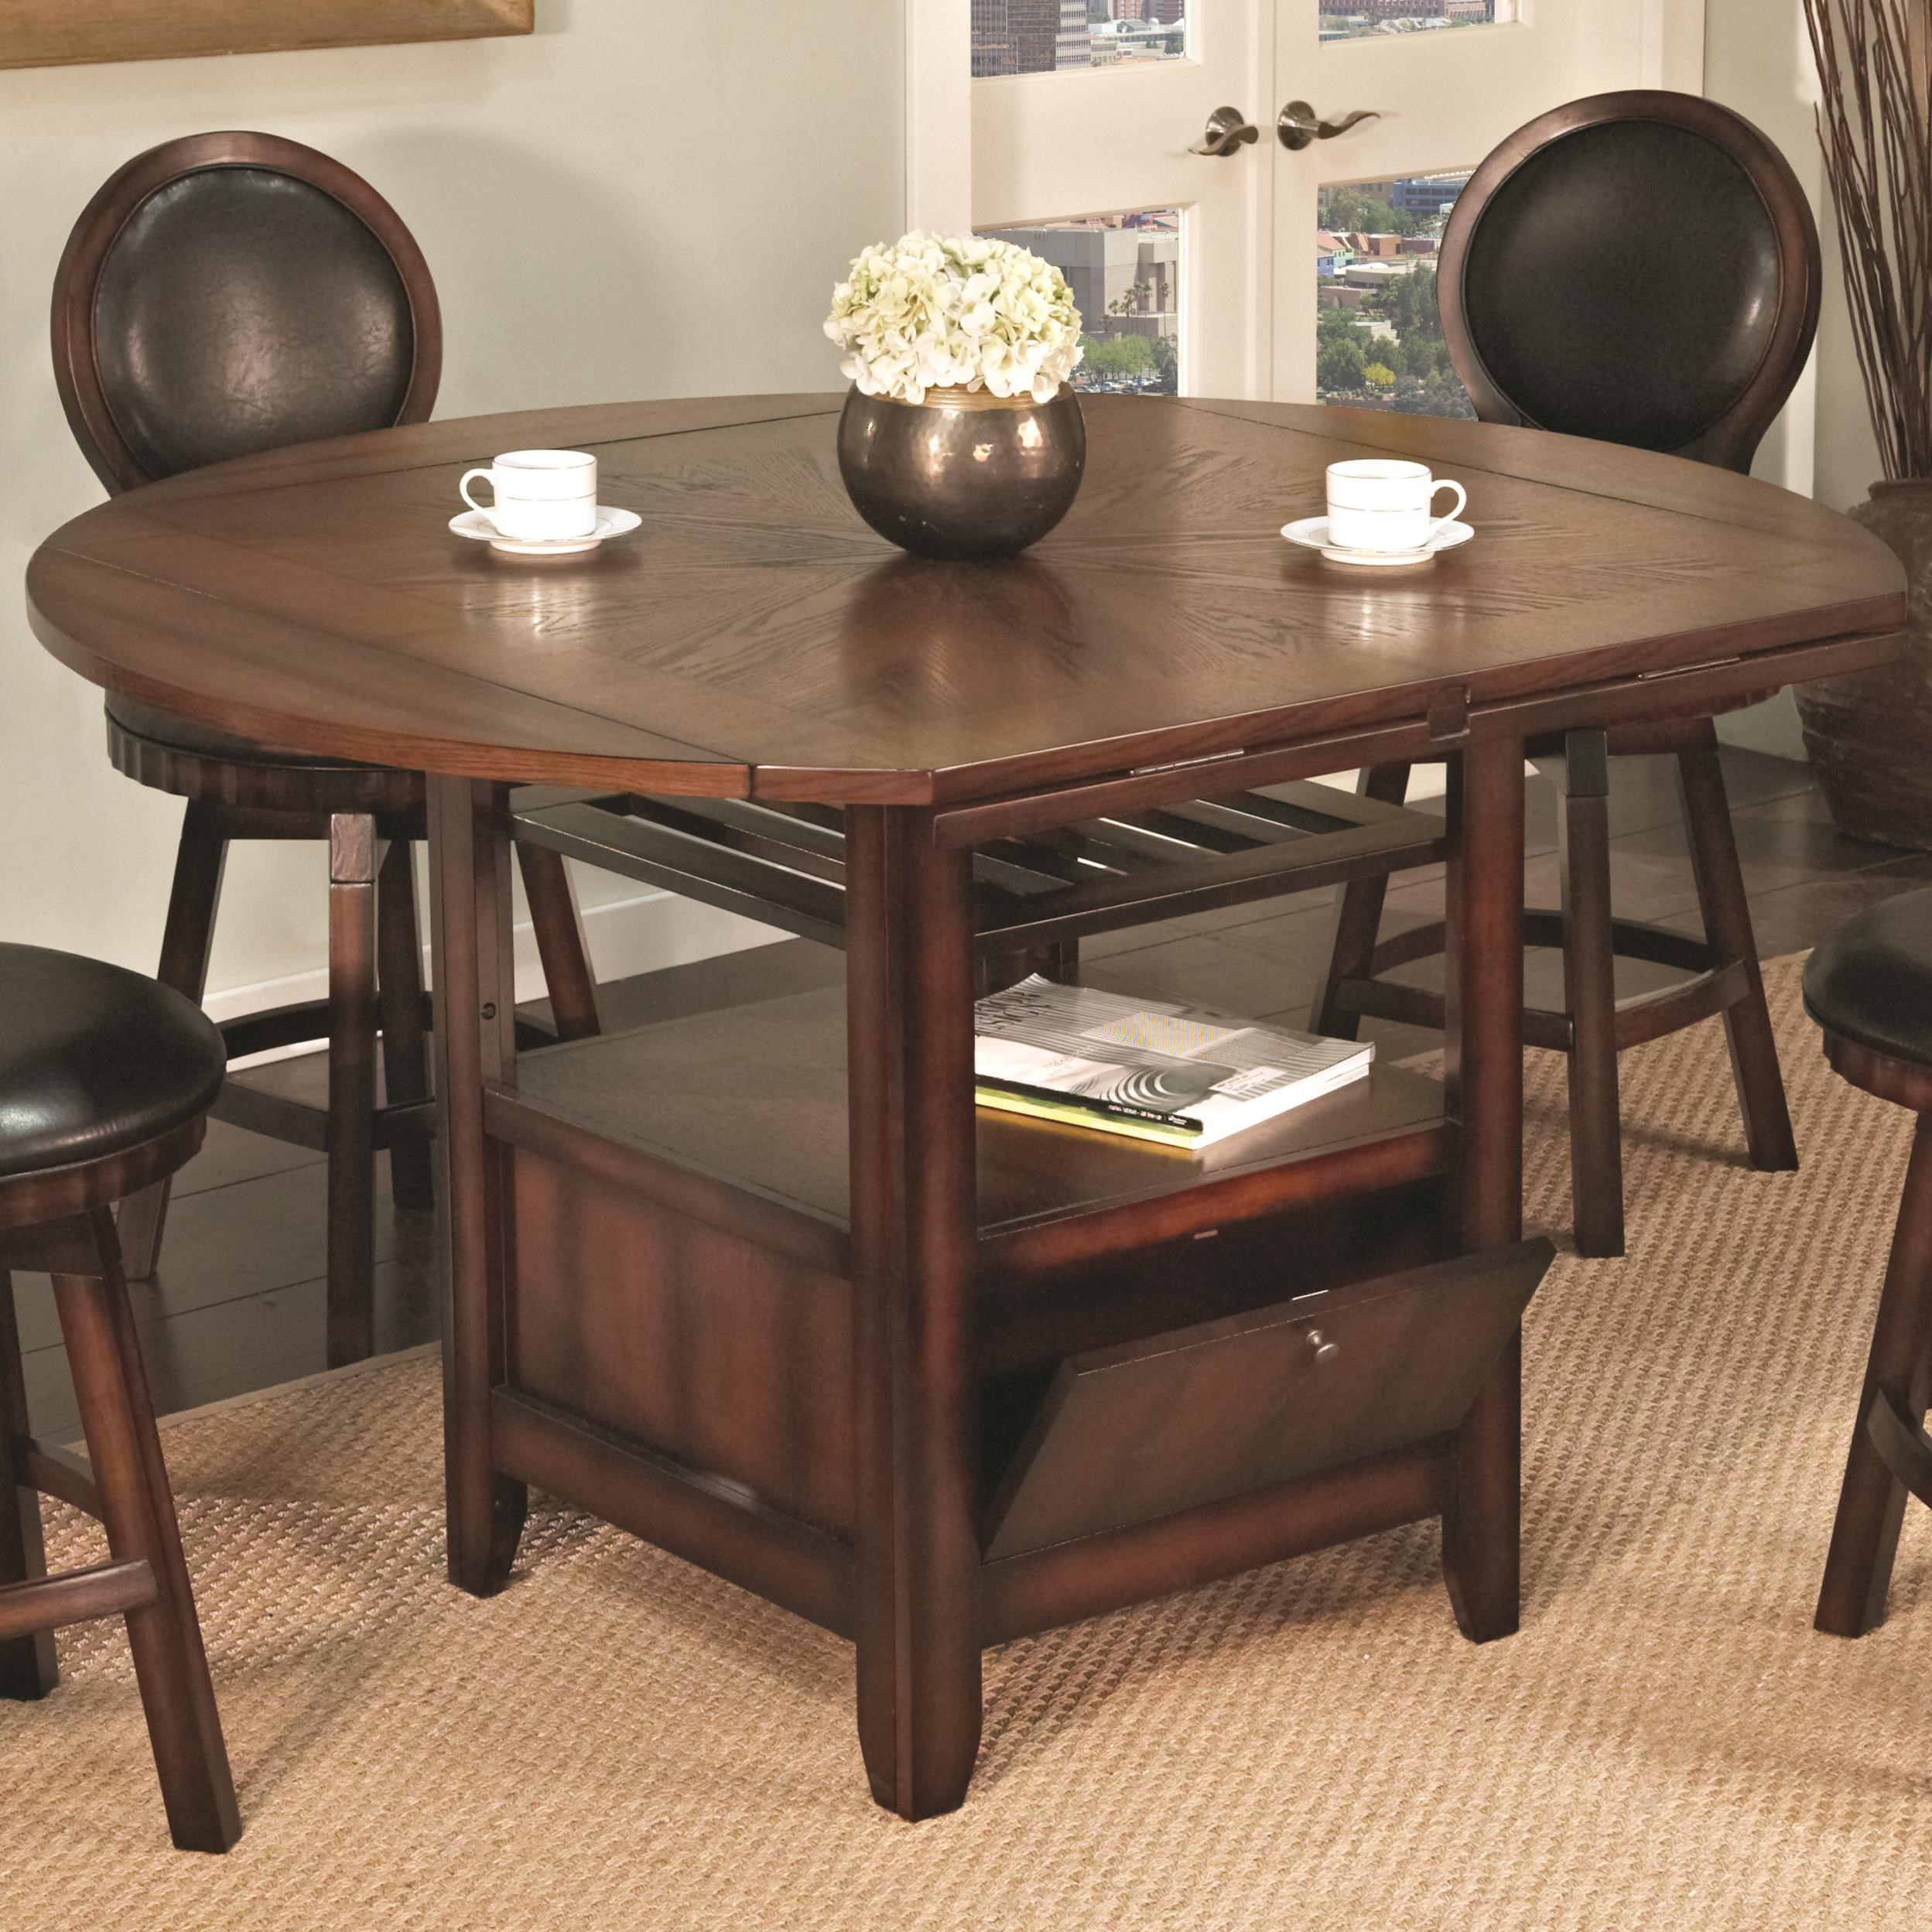 U.S. Furniture Inc 2251/2252 Round Top Pub Table With Storage Base And 4  Drop Leaves   Royal Furniture   Pub Table